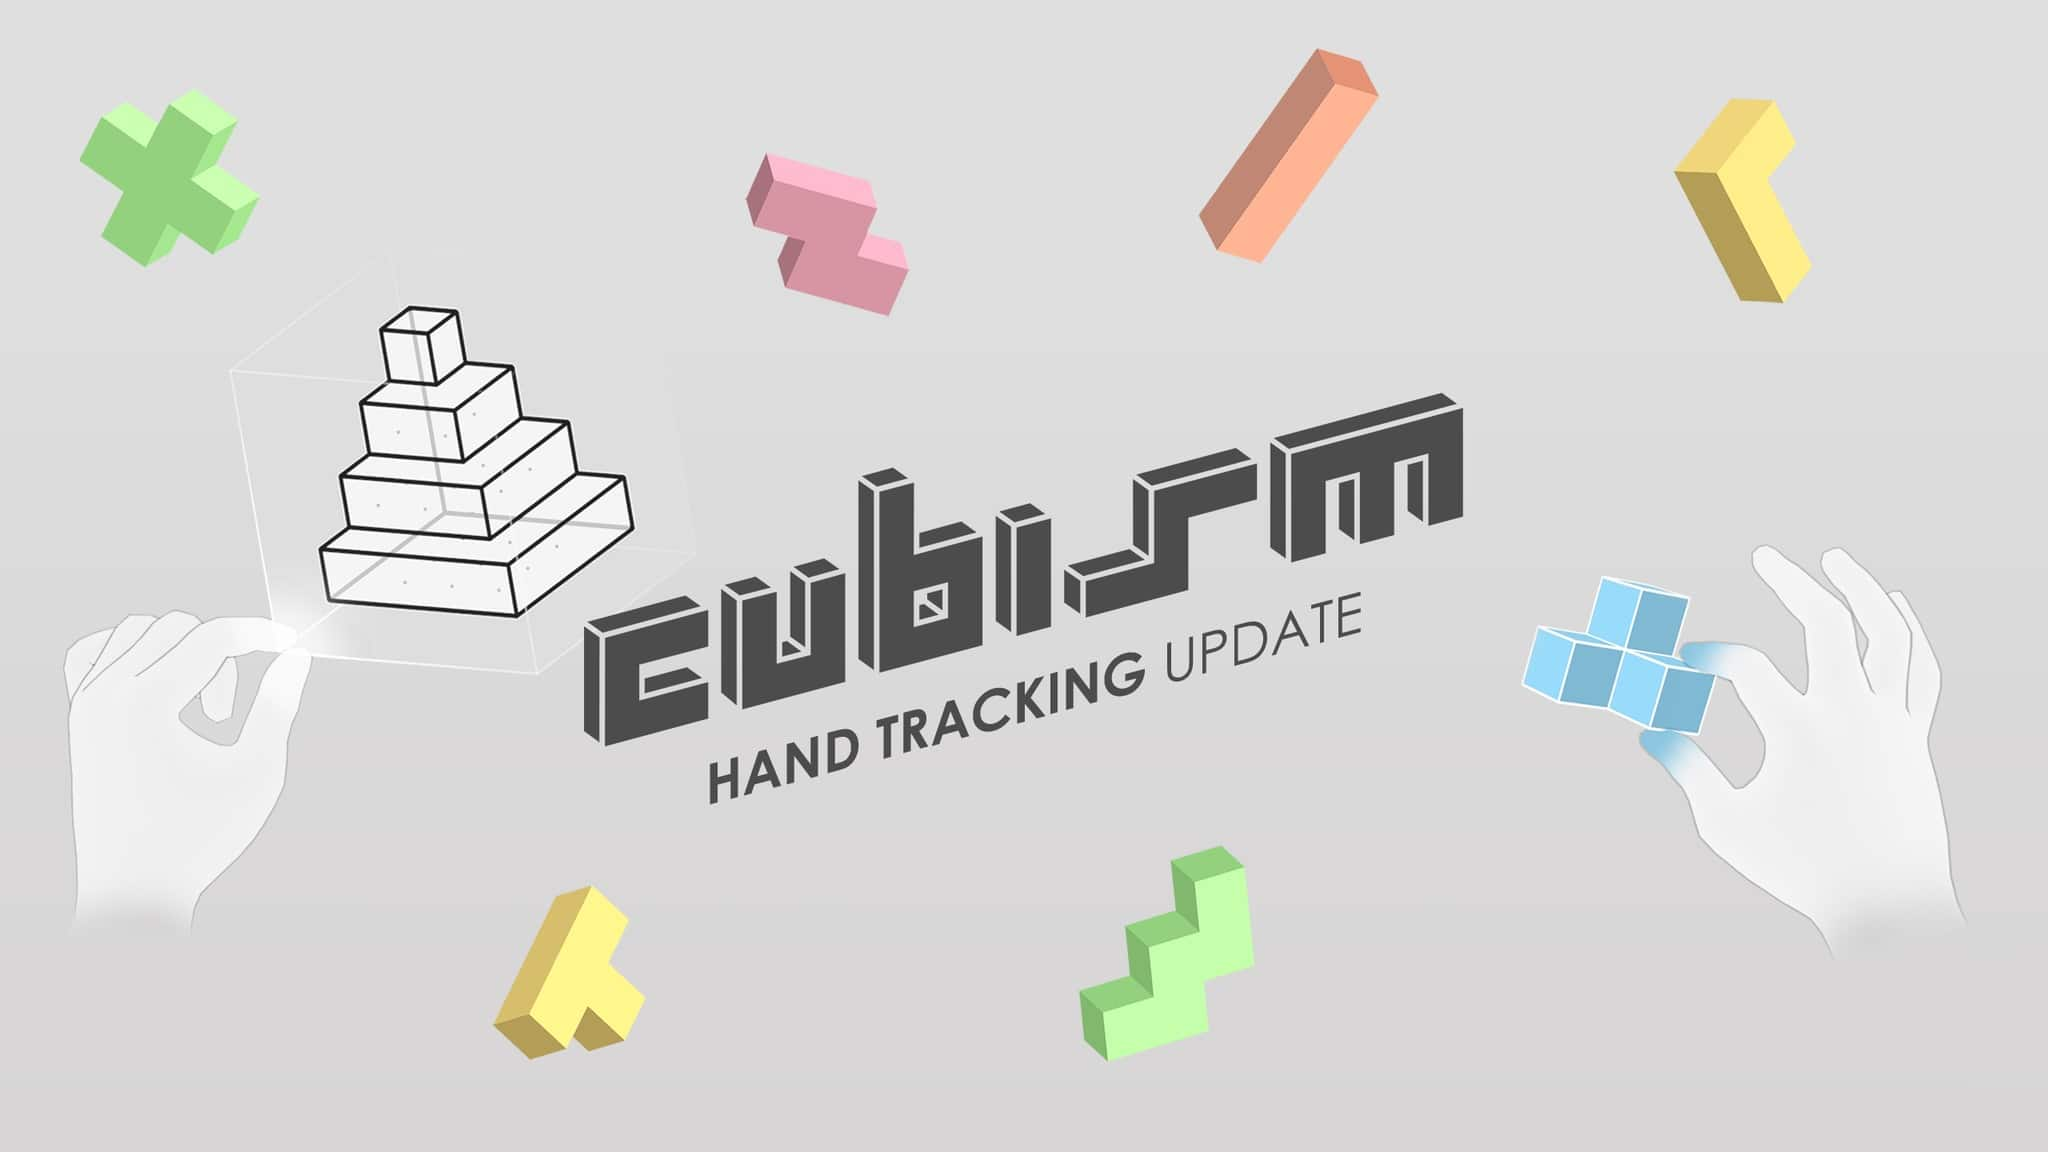 Case Study: The Design Behind 'Cubism's' Hand-tracking – Road to VR